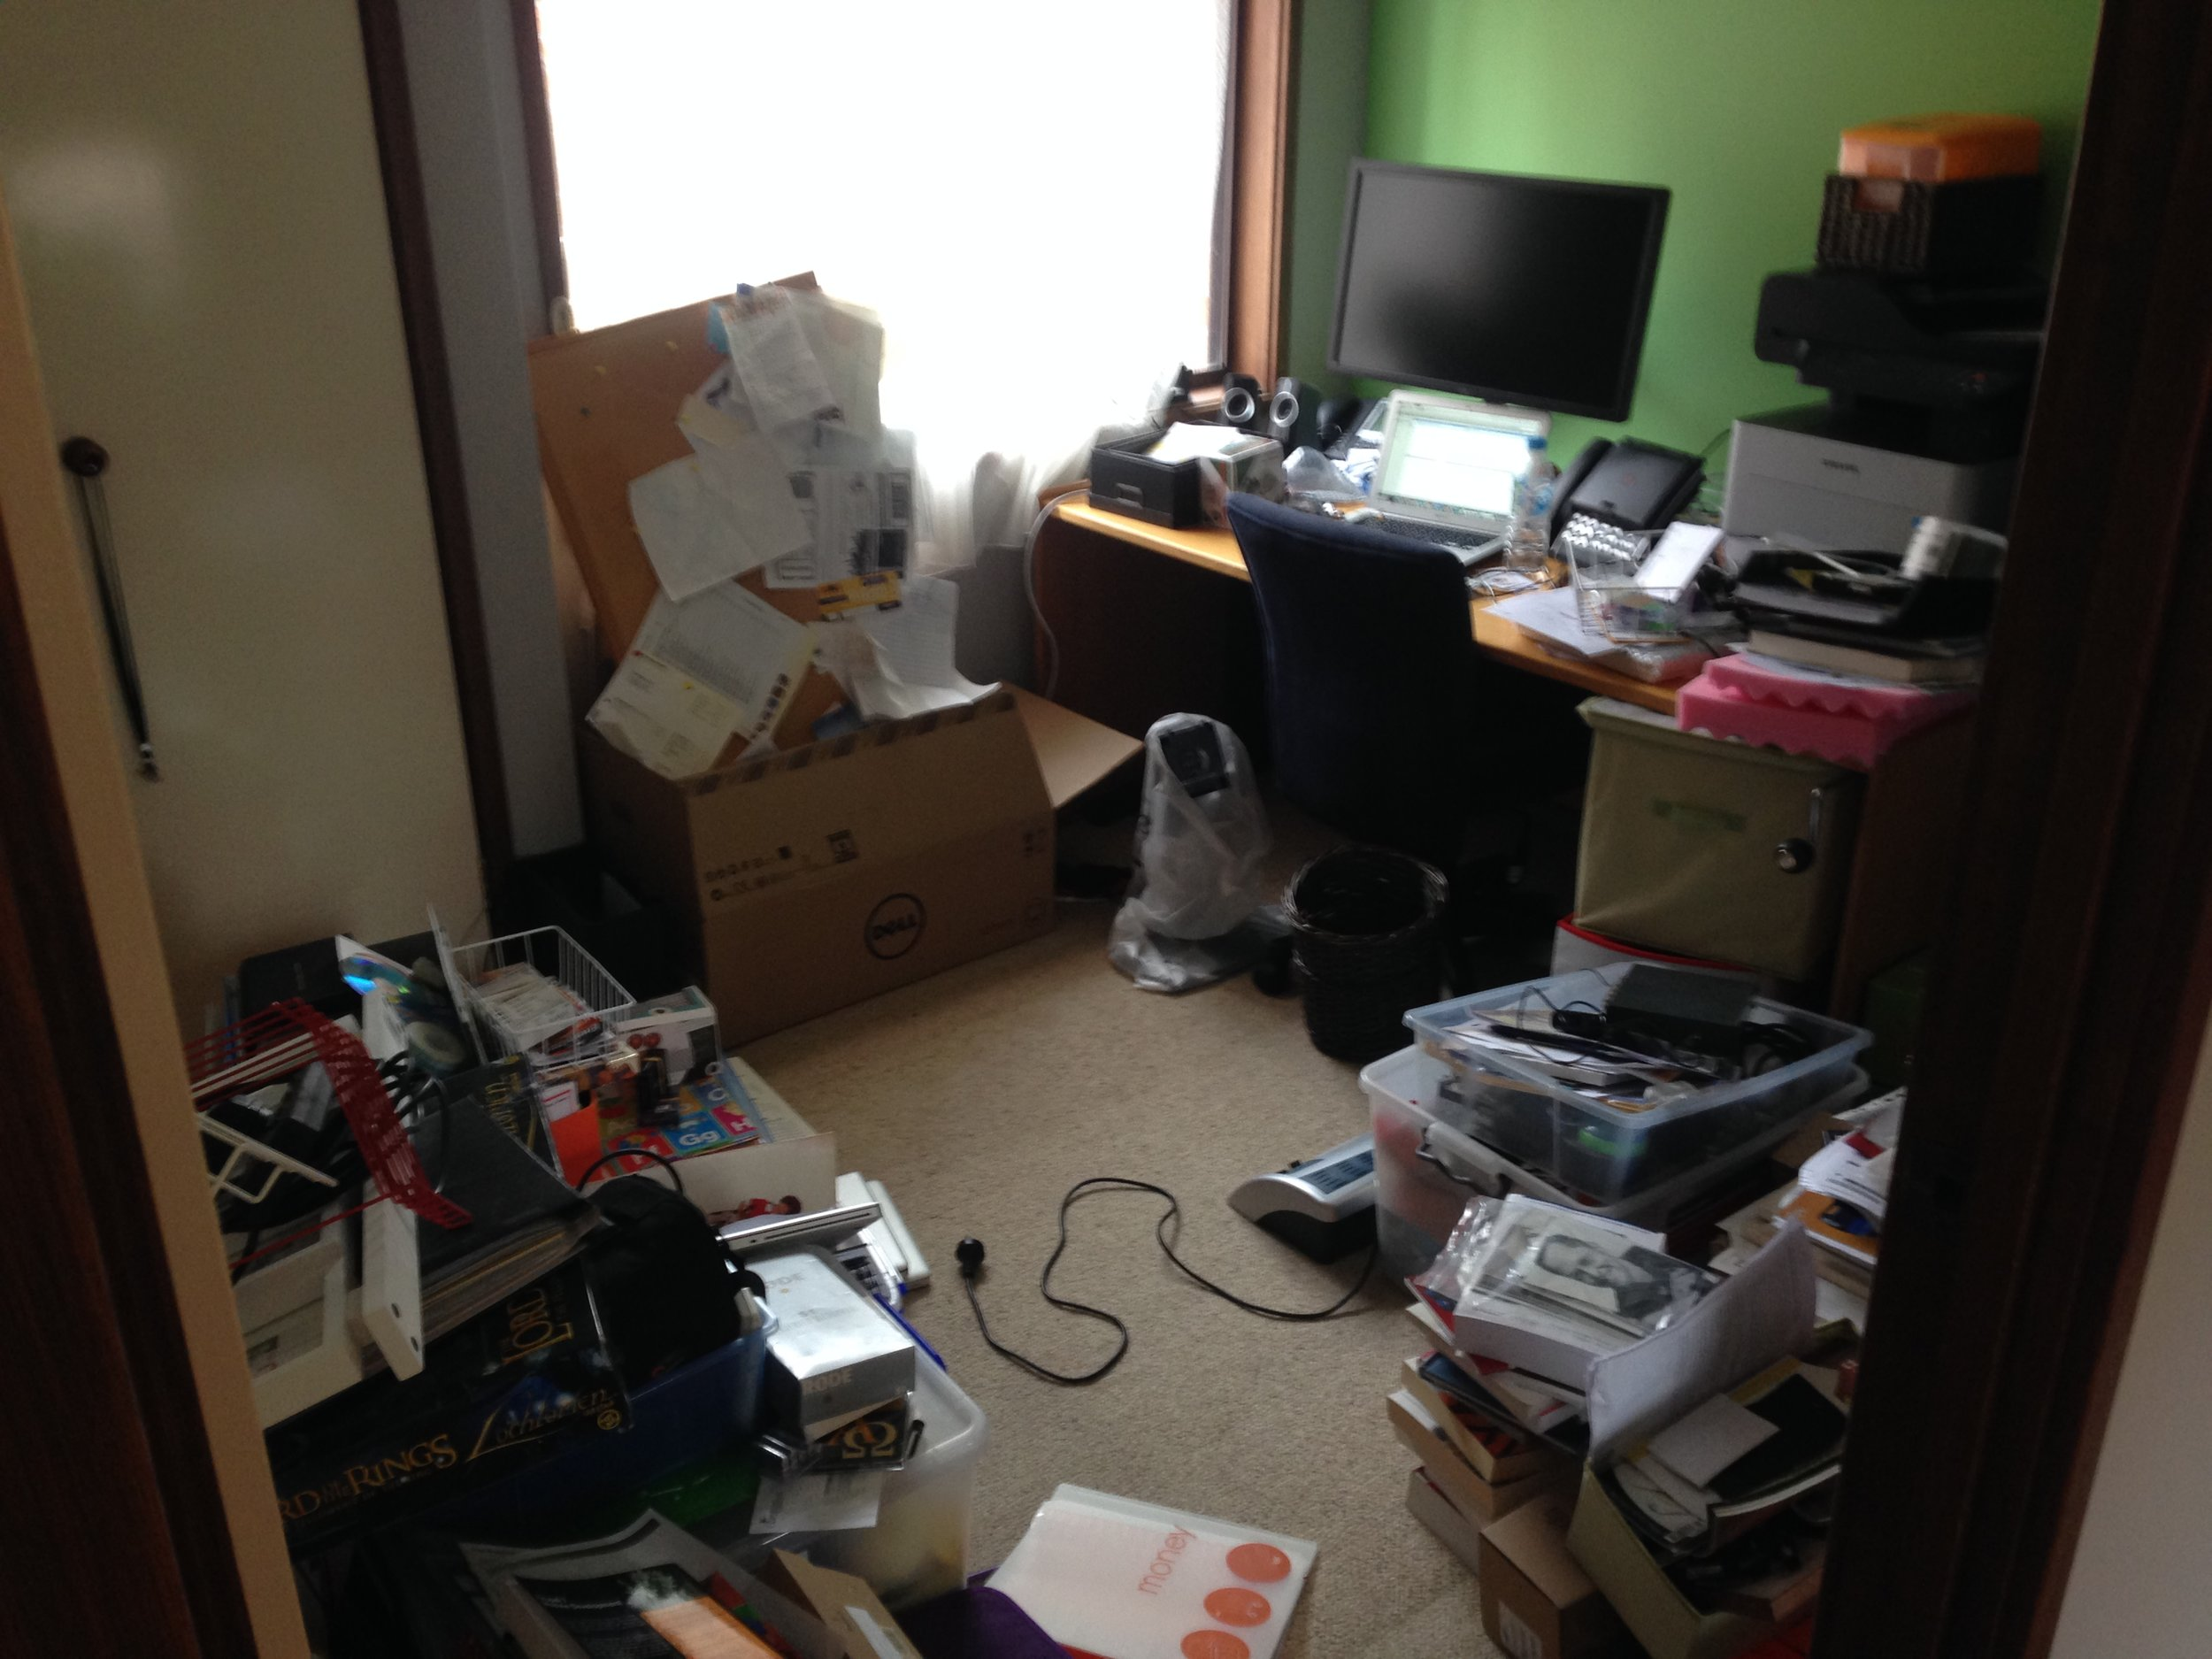 This study was a dumping ground for anything business or tech related in the home.